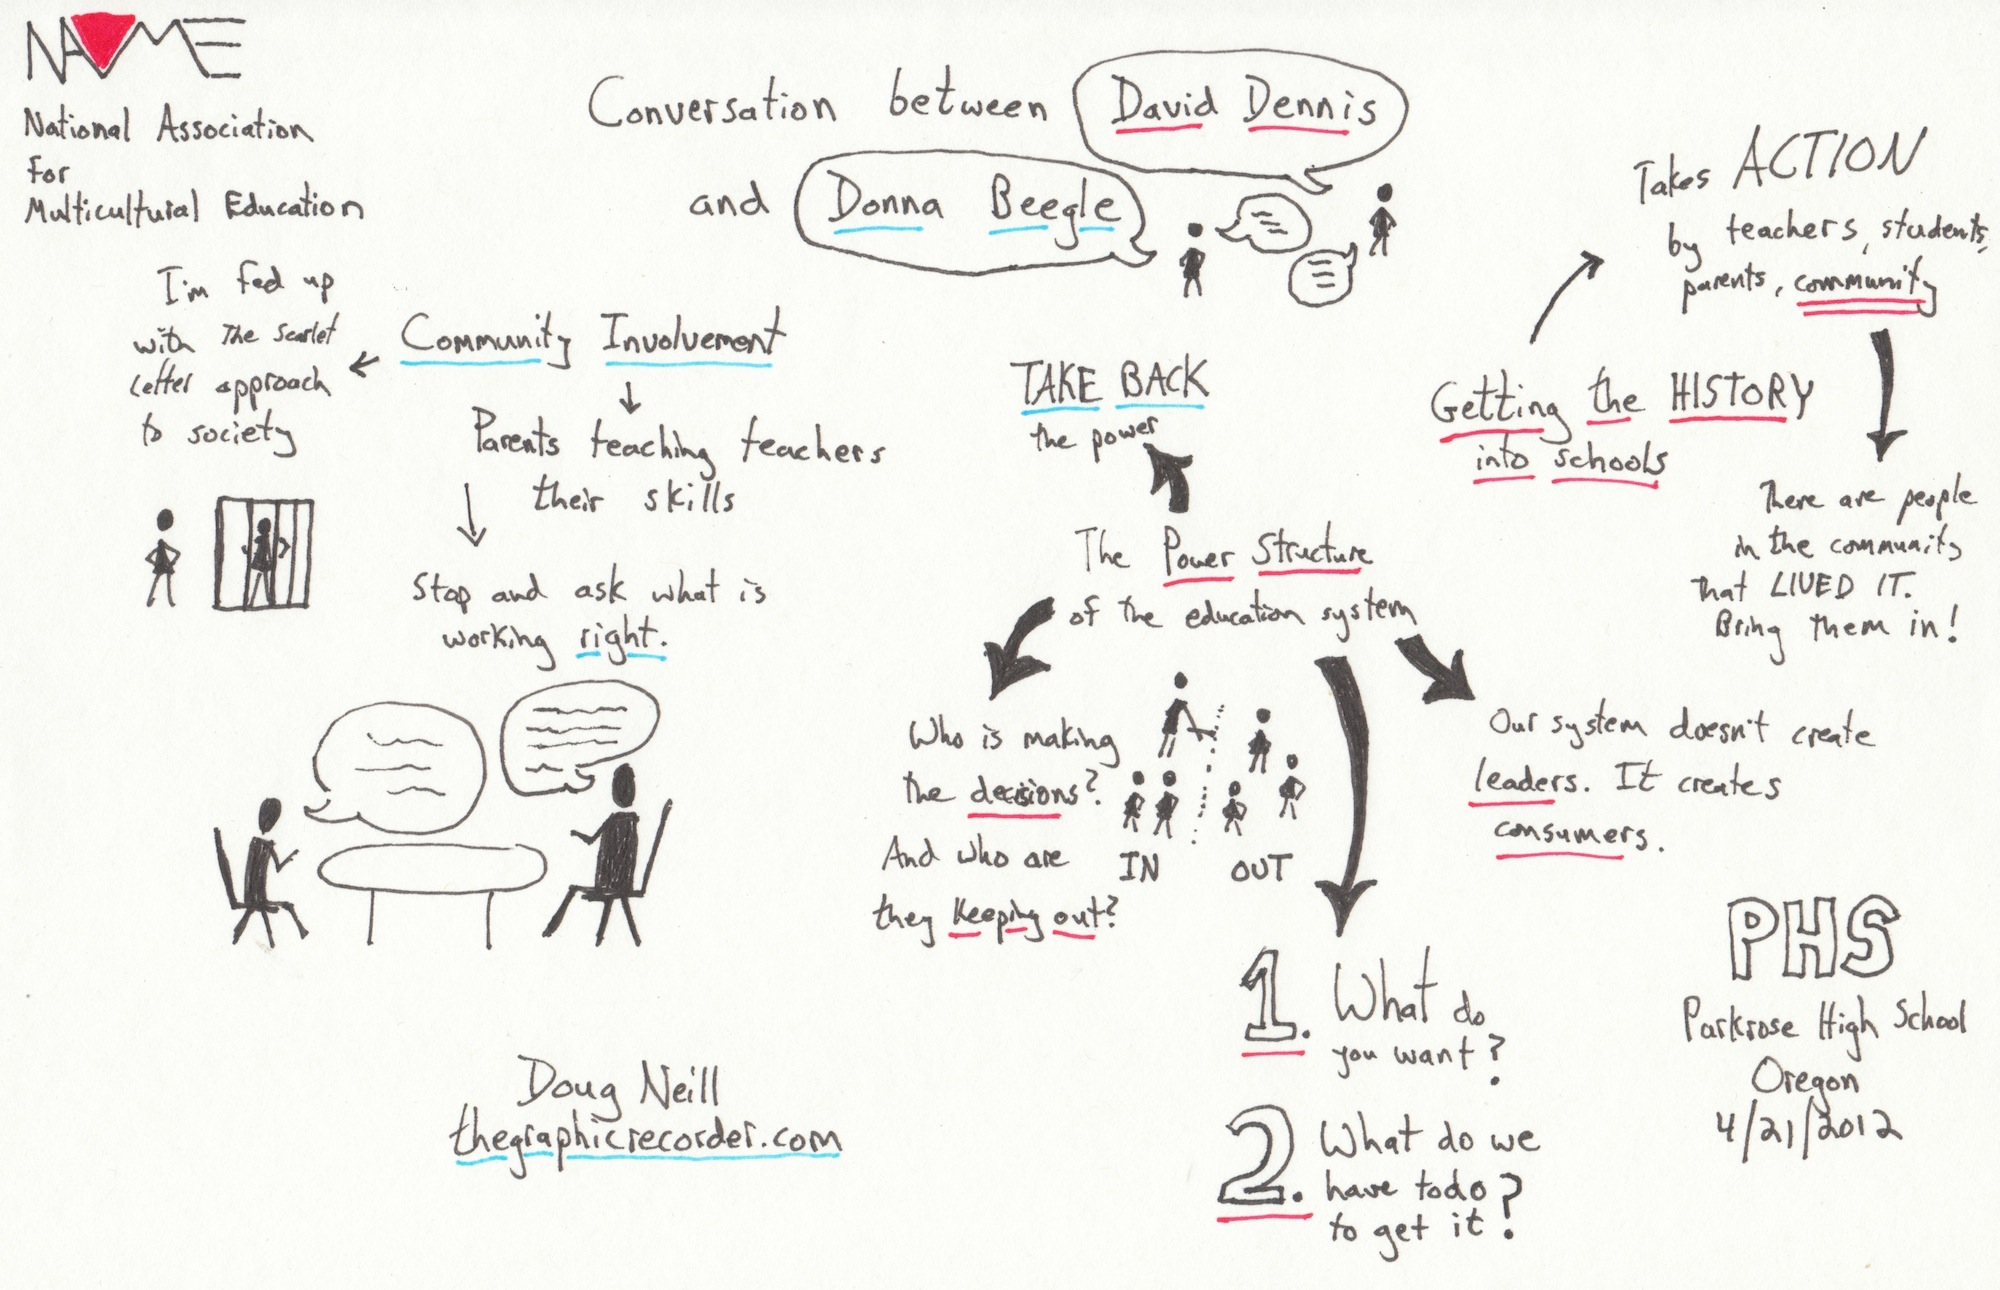 The Graphic Recorder - Doug Neill - Sketch Notes - Oregon NAME Conference 2012 - Conversation between David Dennis and Donna Beegle